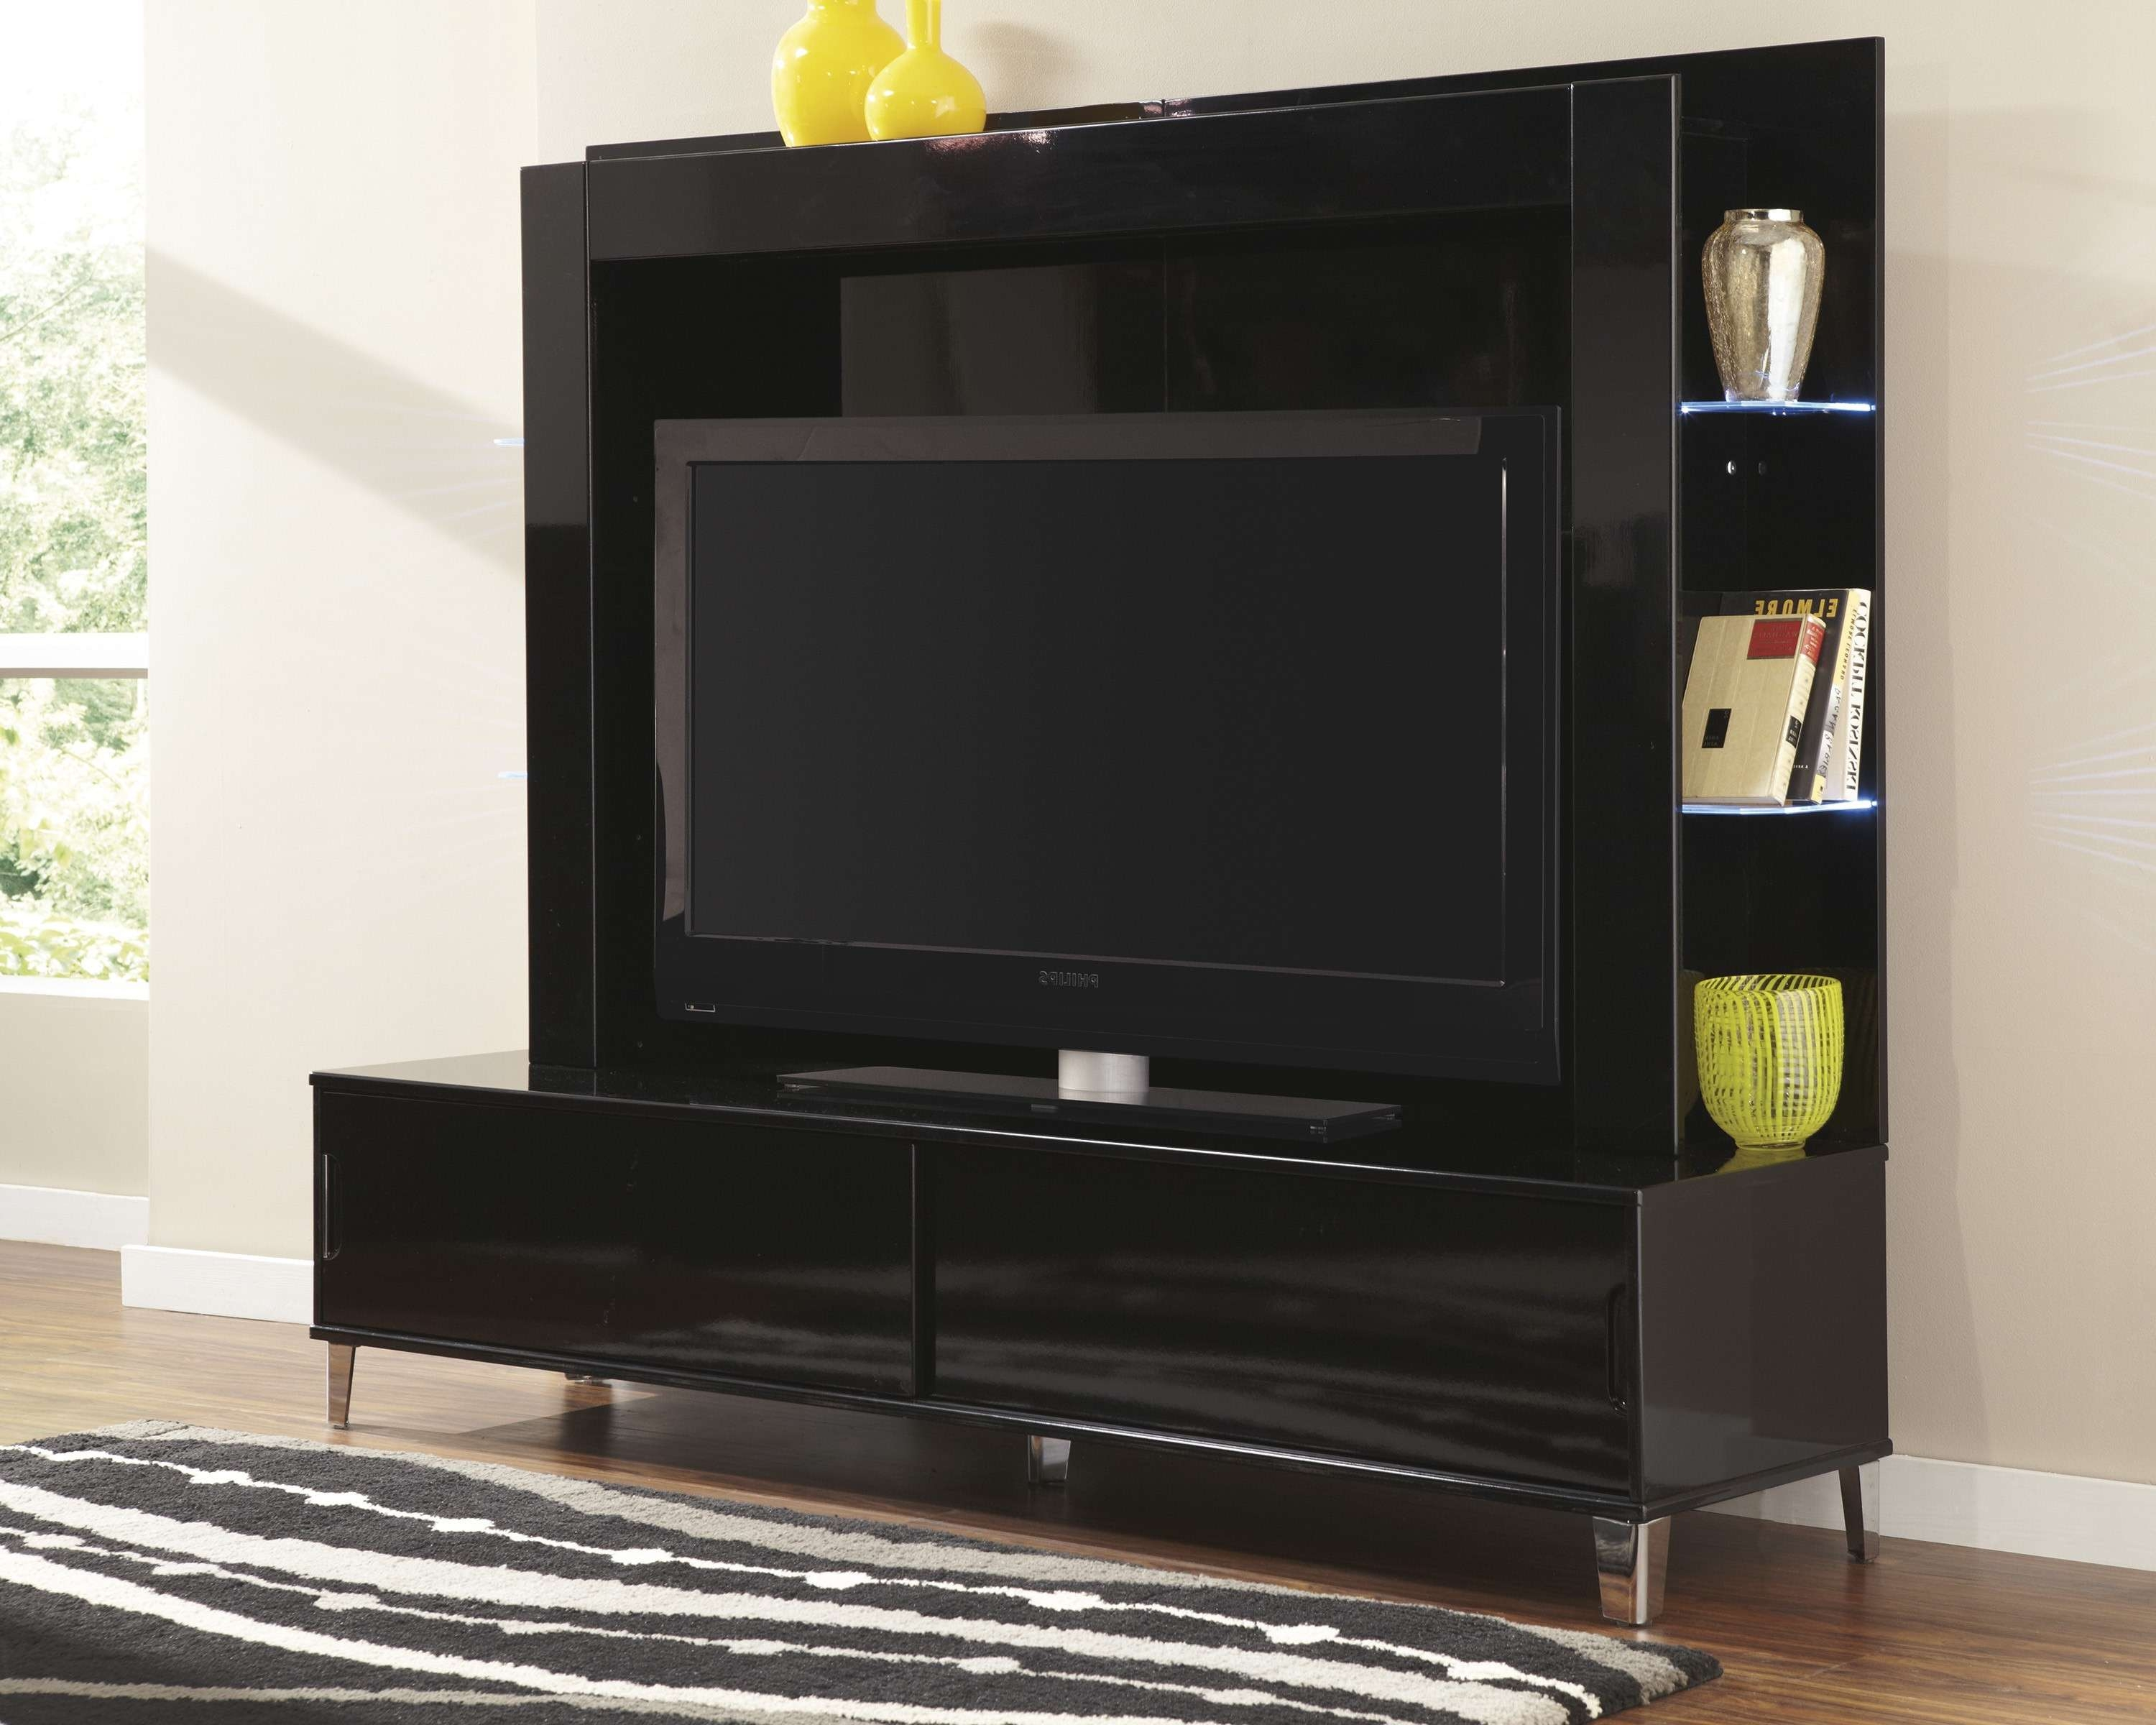 Double Bowl Carpet In Flat Screens Screen Tv Mount Stand Cream With Contemporary Tv Stands For Flat Screens (View 5 of 20)